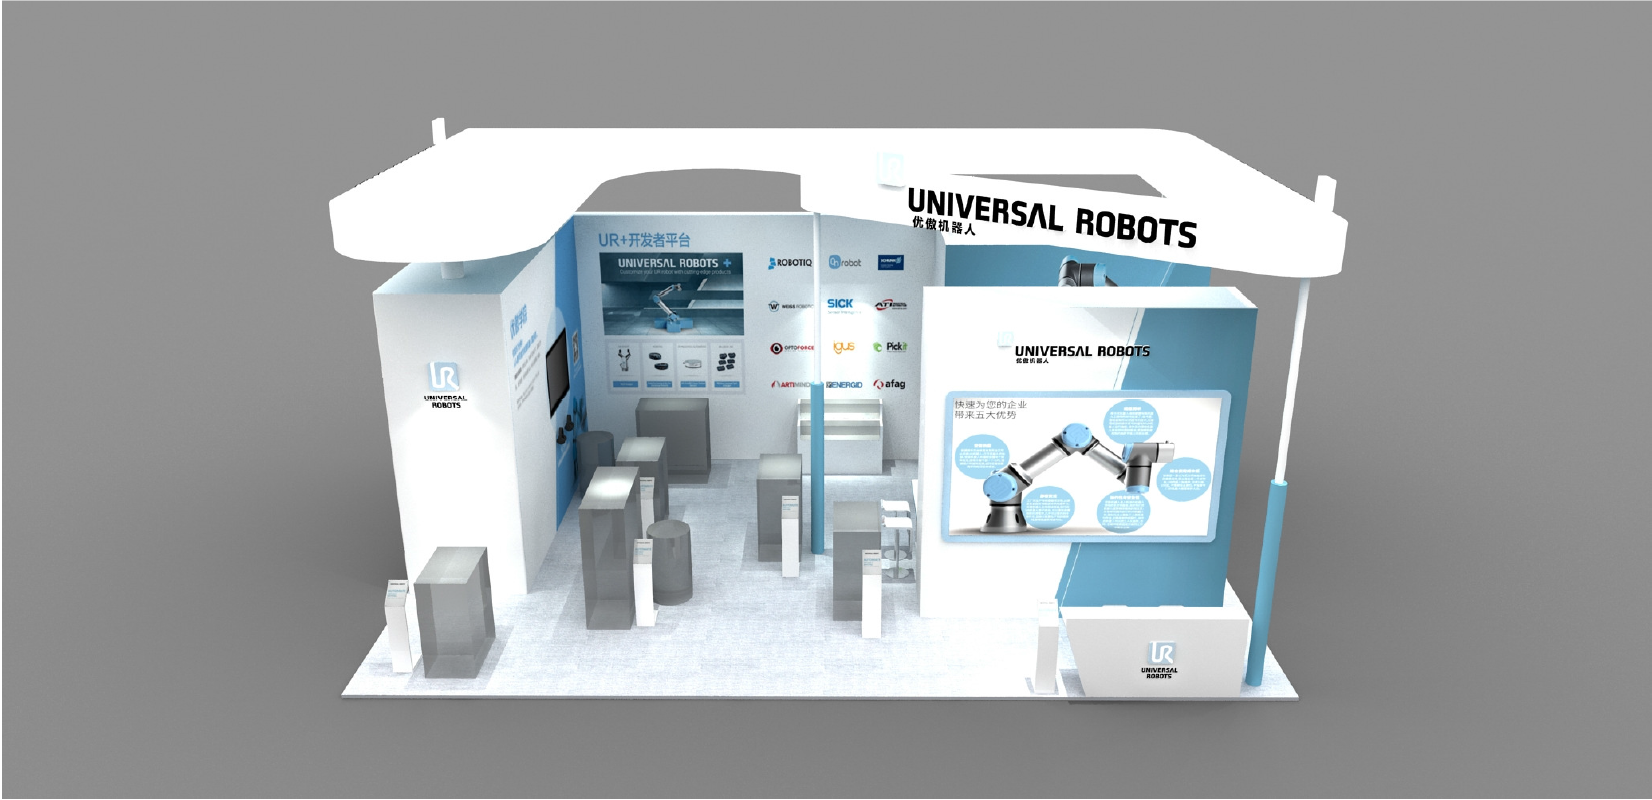 Meet Universal Robots at CIIF Trade Show in Shanghai